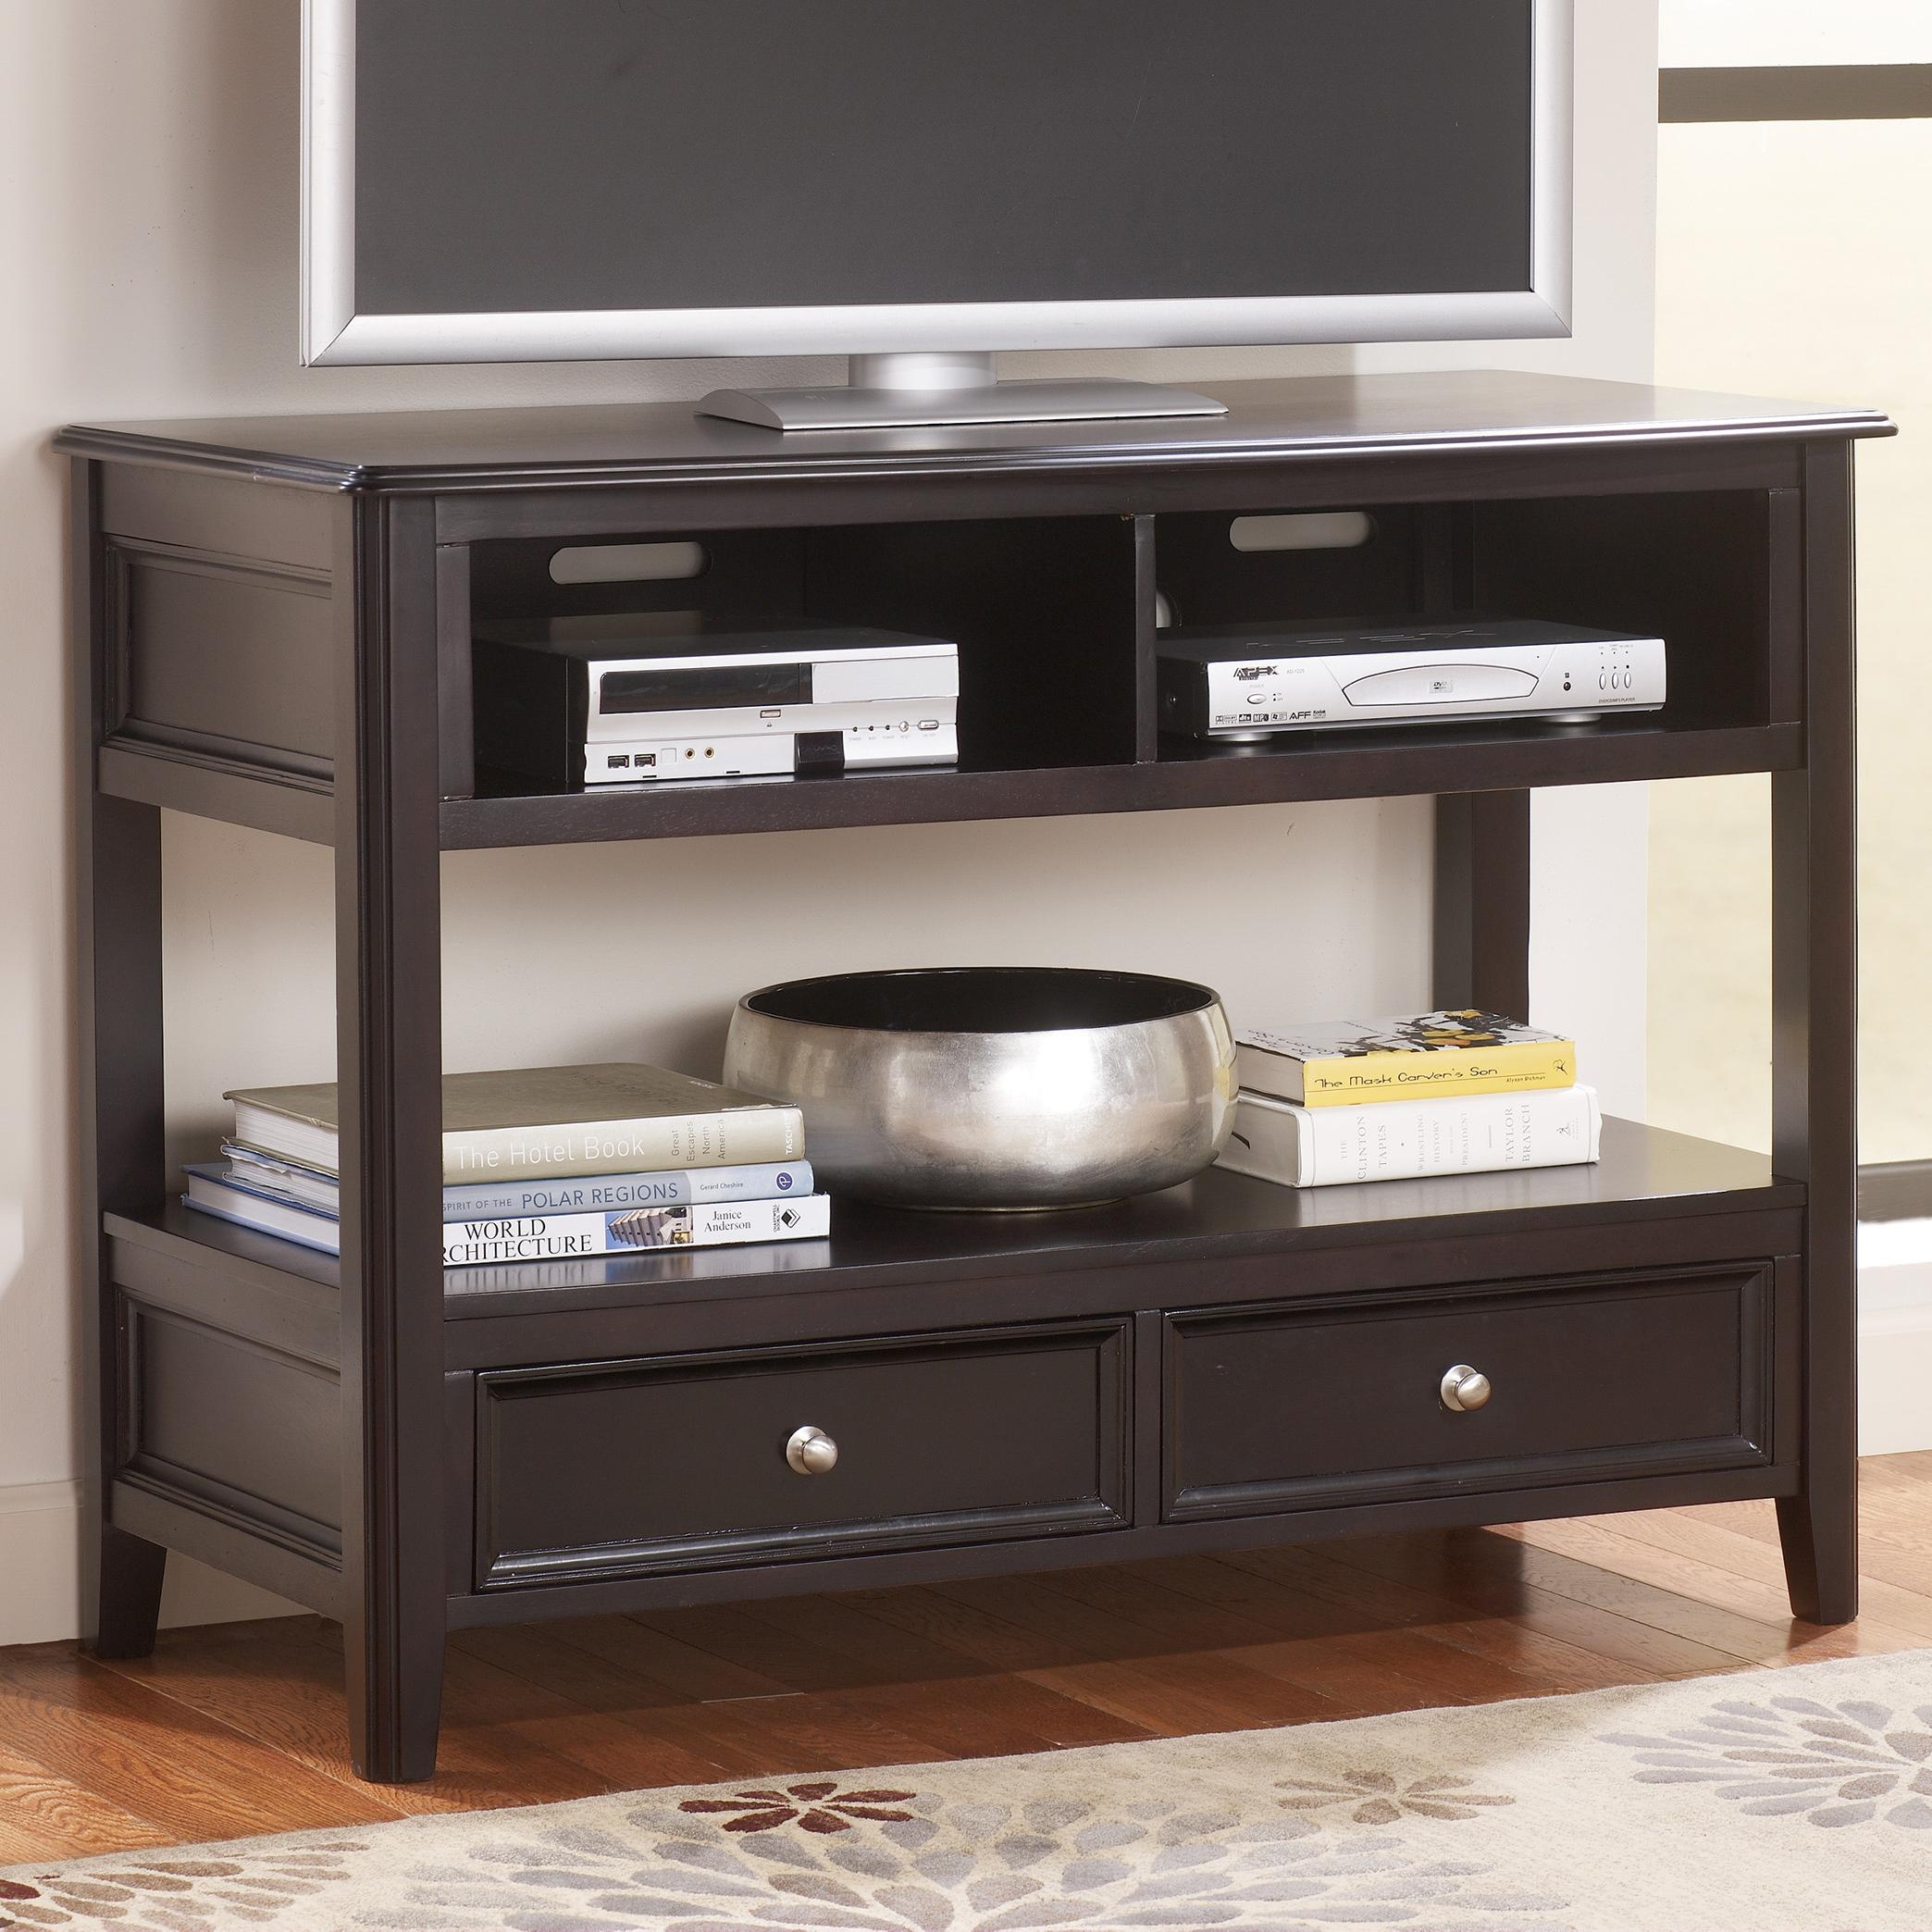 Signature Design by Ashley Carlyle Sofa Table - Item Number: T771-4